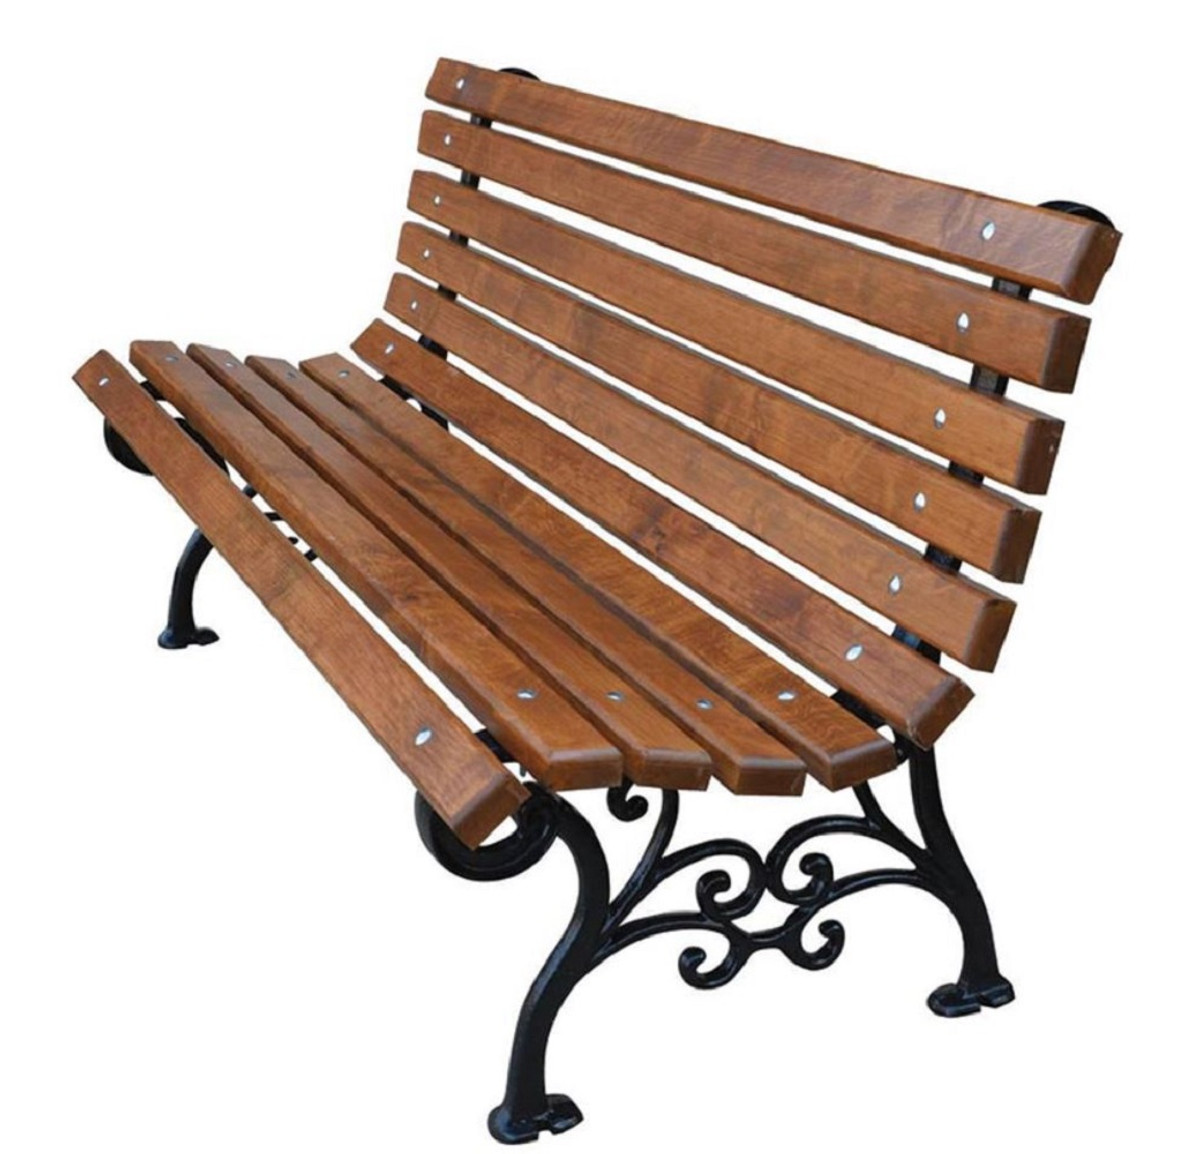 Astonishing Casa Padrino Art Nouveau Garden Bench Brown Black 150 X 42 X H 73 Cm Bench Park Bench Wooden Bench Garden Furniture Pabps2019 Chair Design Images Pabps2019Com